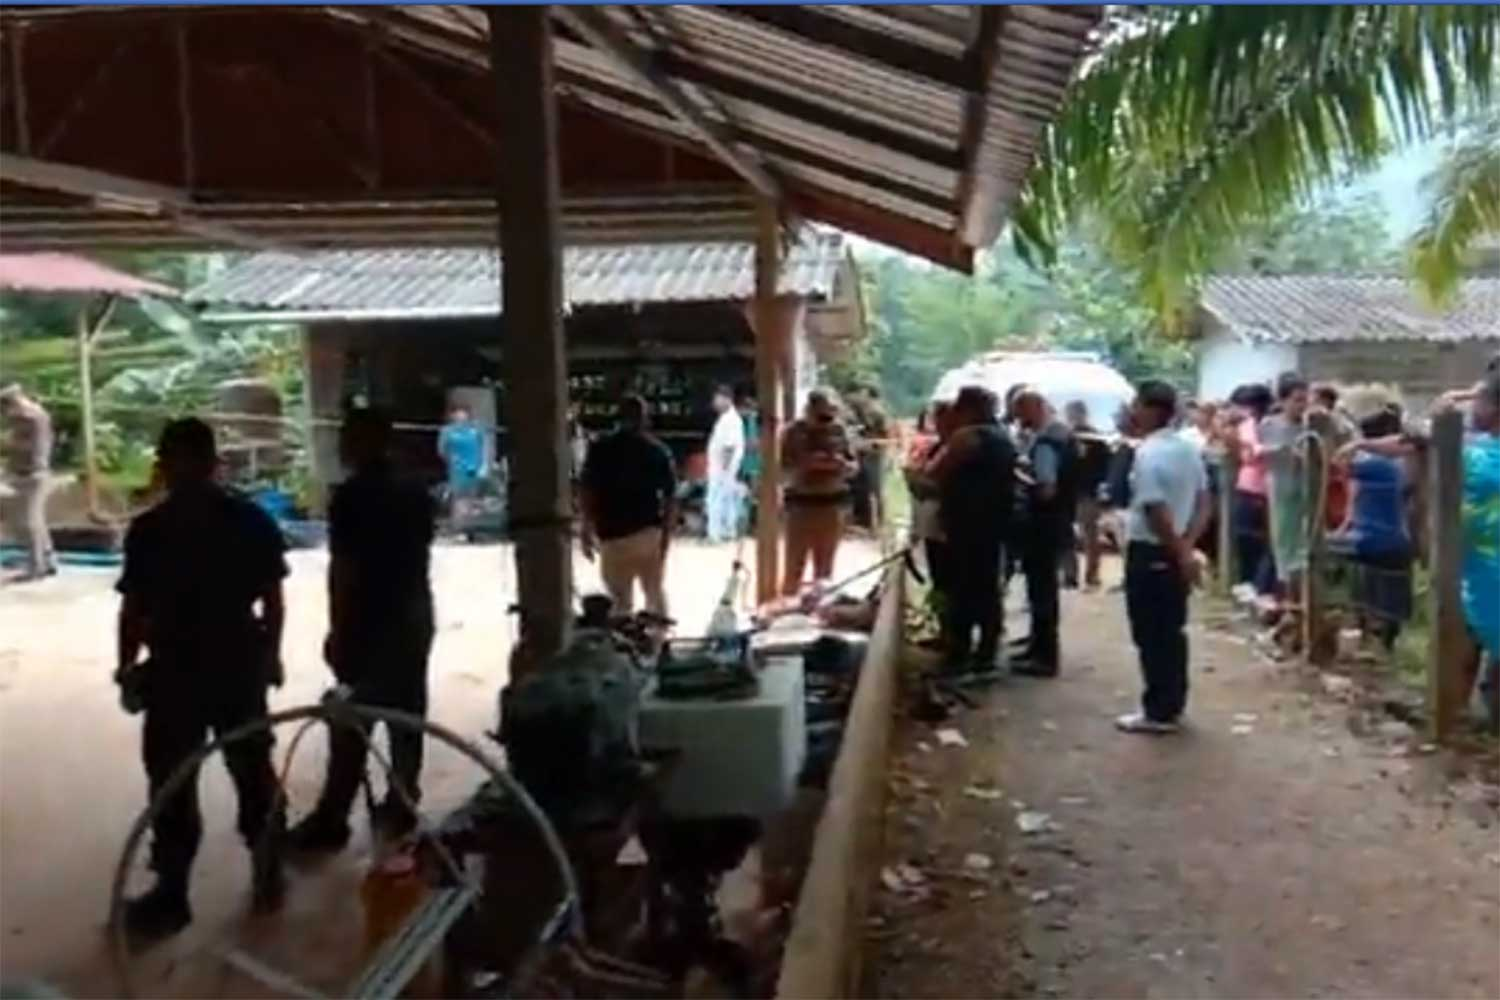 Police inspect a house where two women and a 13-year-old girl were shot dead in tambon Krathing in Chumphon on Saturday morning. A former tambon chief is in custody. (Capture from a video from @123khondeenews Facebook page)